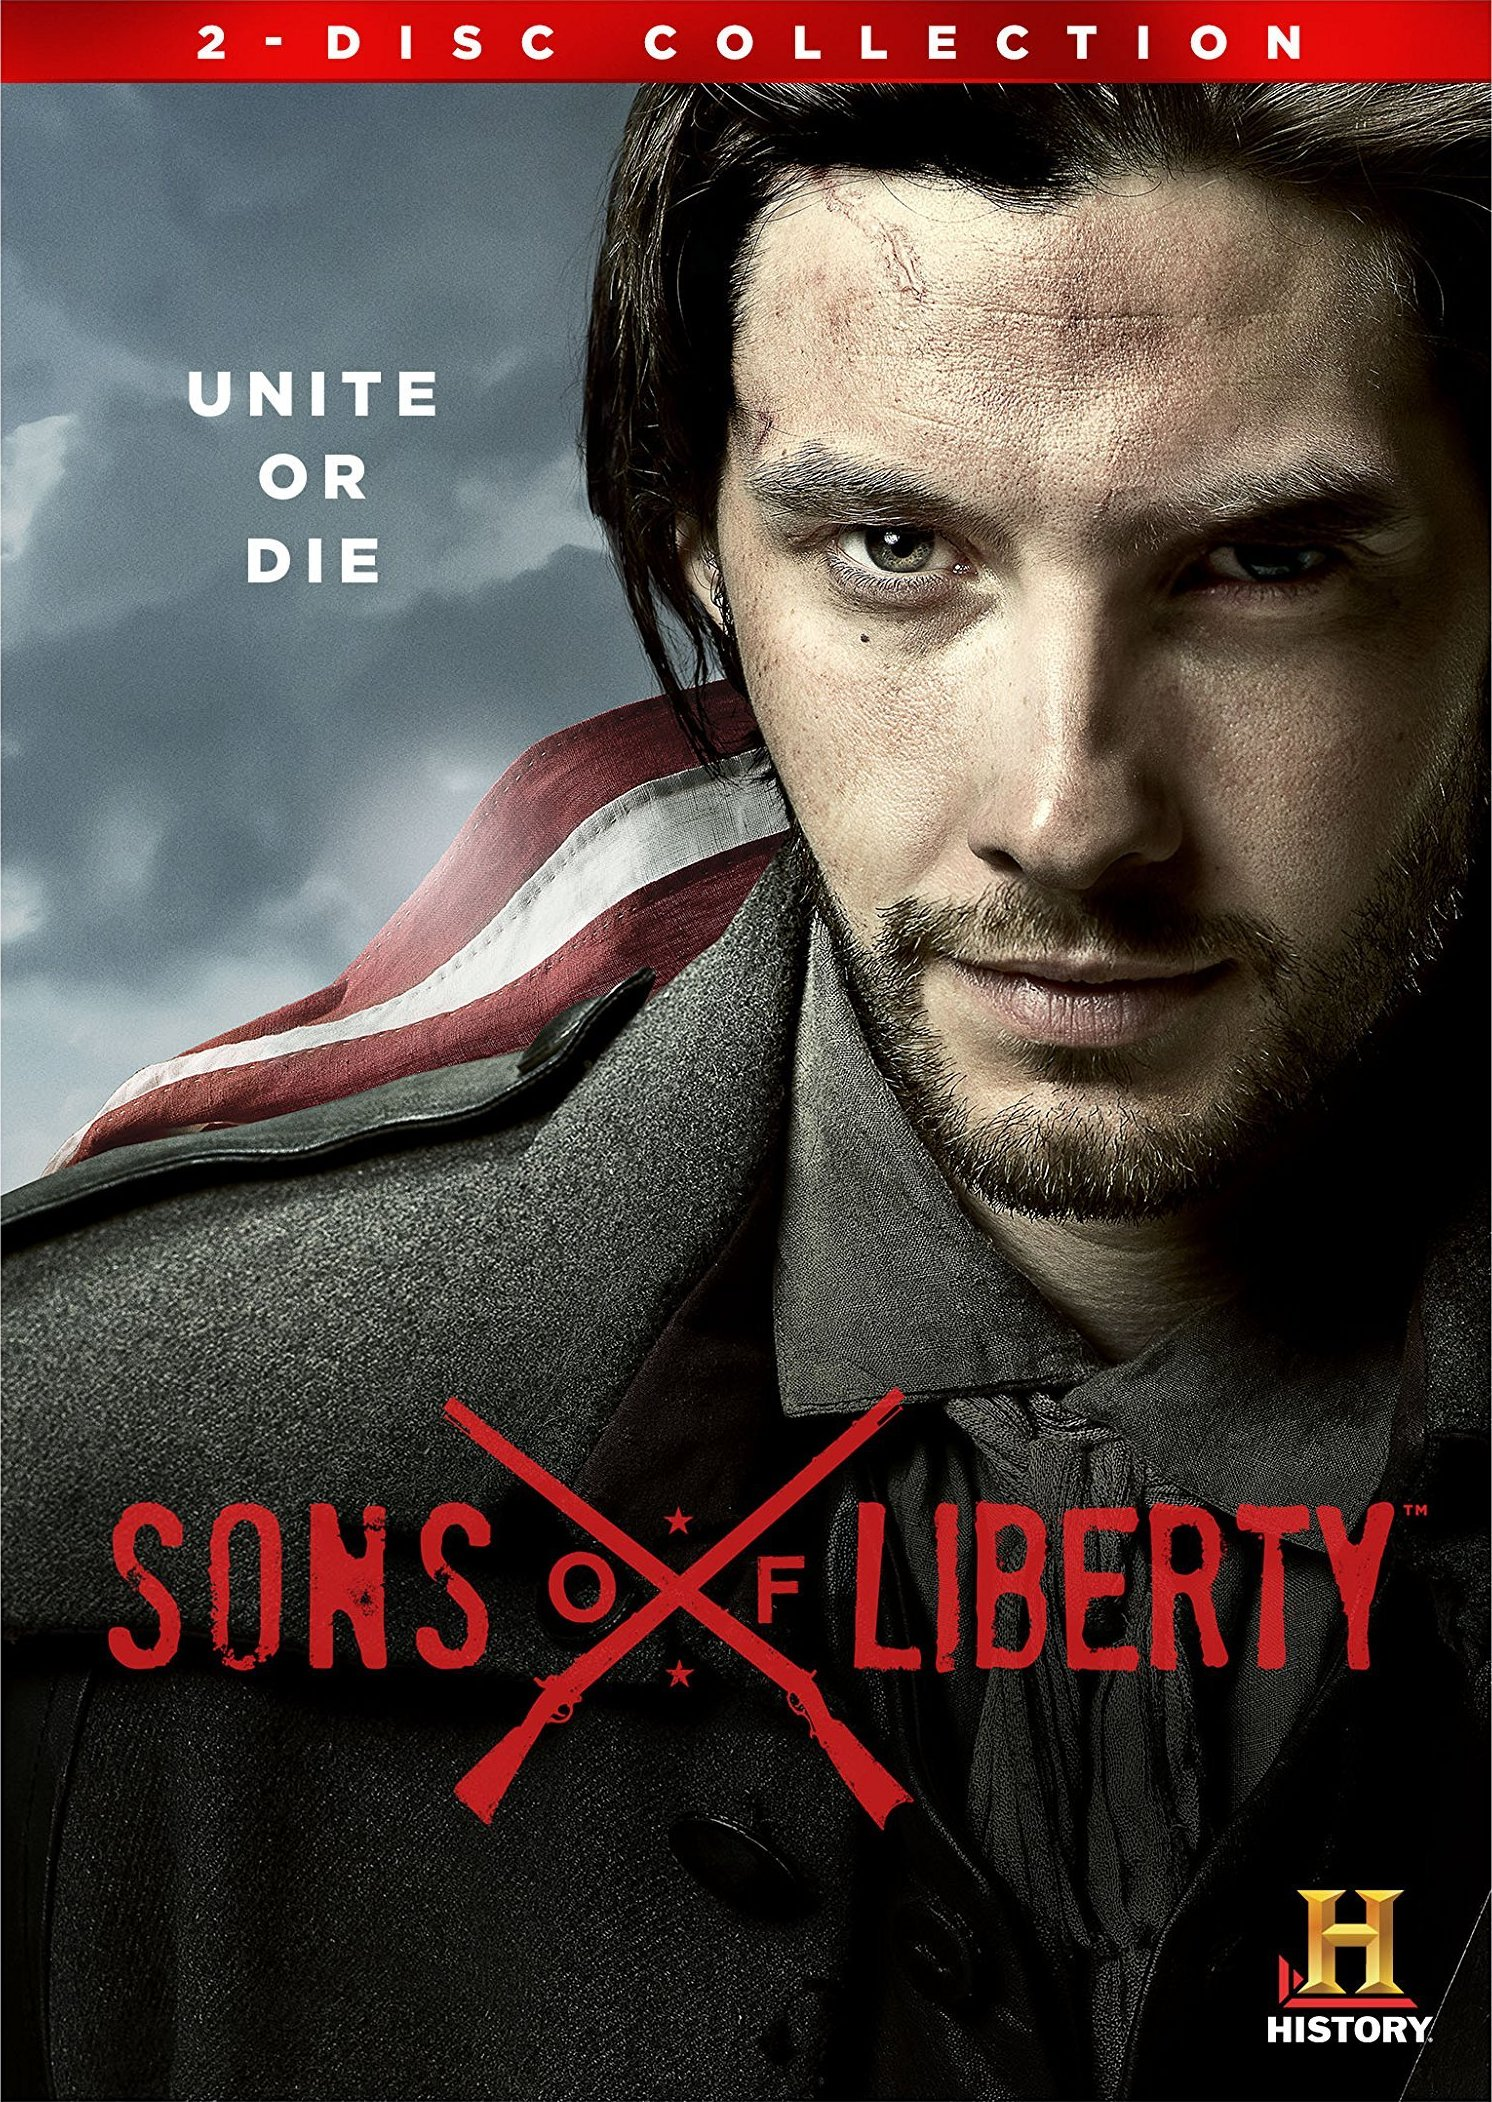 Sons_of_Liberty_Season_1_DVD_front_cover.jpg